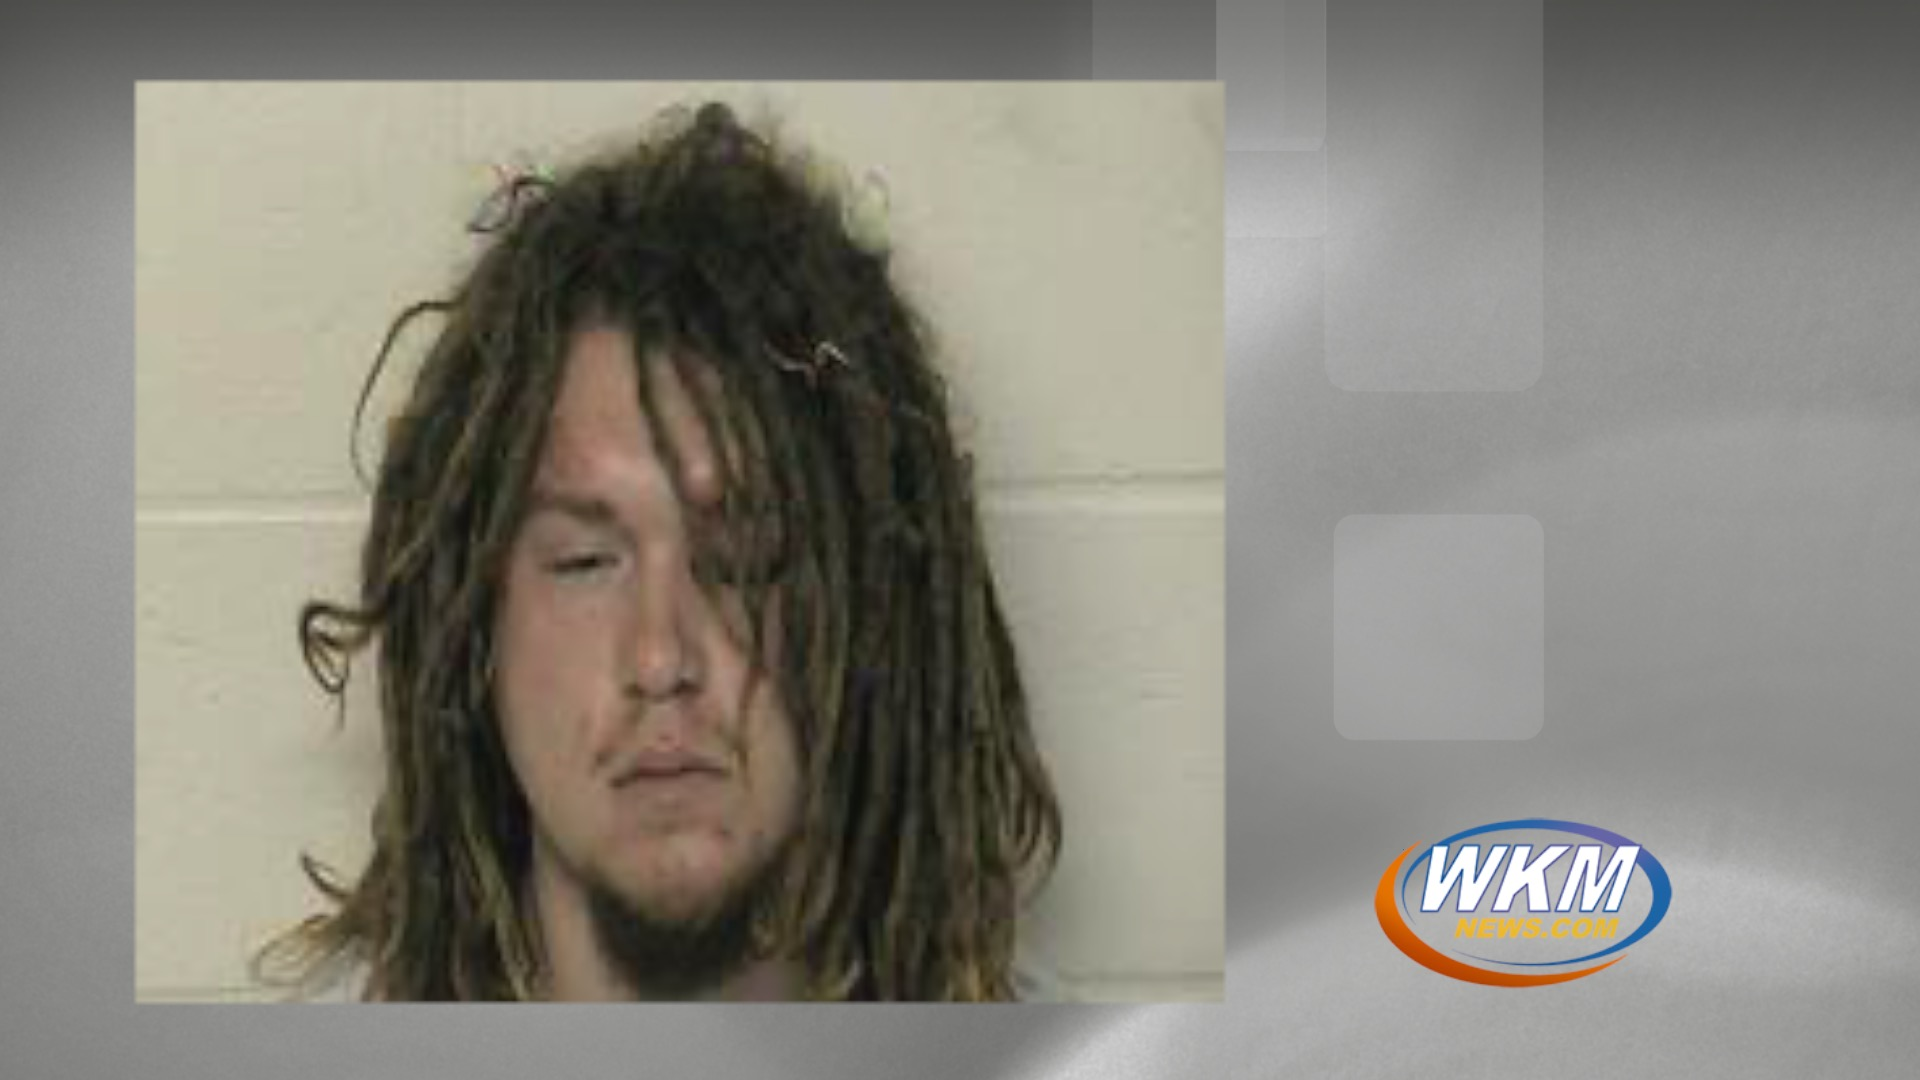 Intoxicated Man Arrested for Public Nudity in Scott County